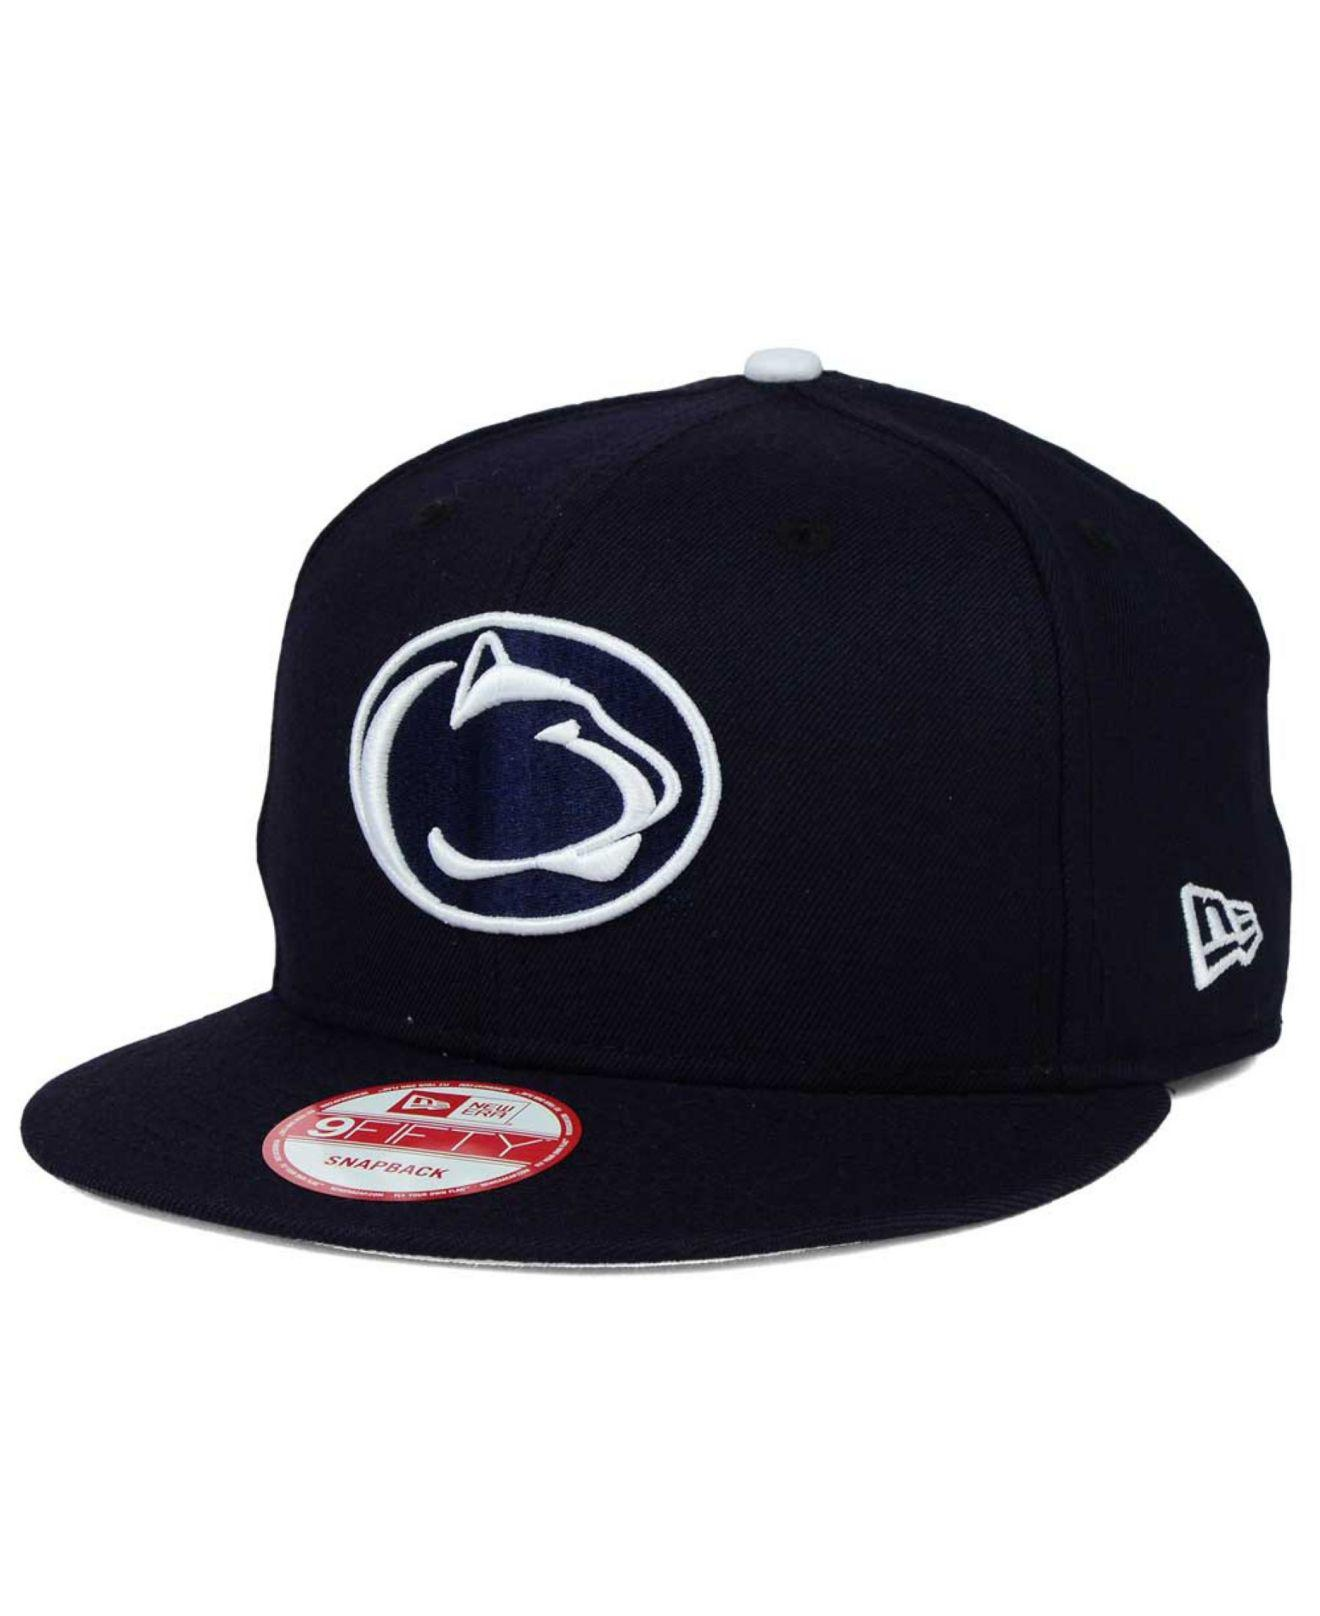 fb641a23c37 Lyst - Ktz Penn State Nittany Lions Core 9fifty Snapback Cap in Blue ...